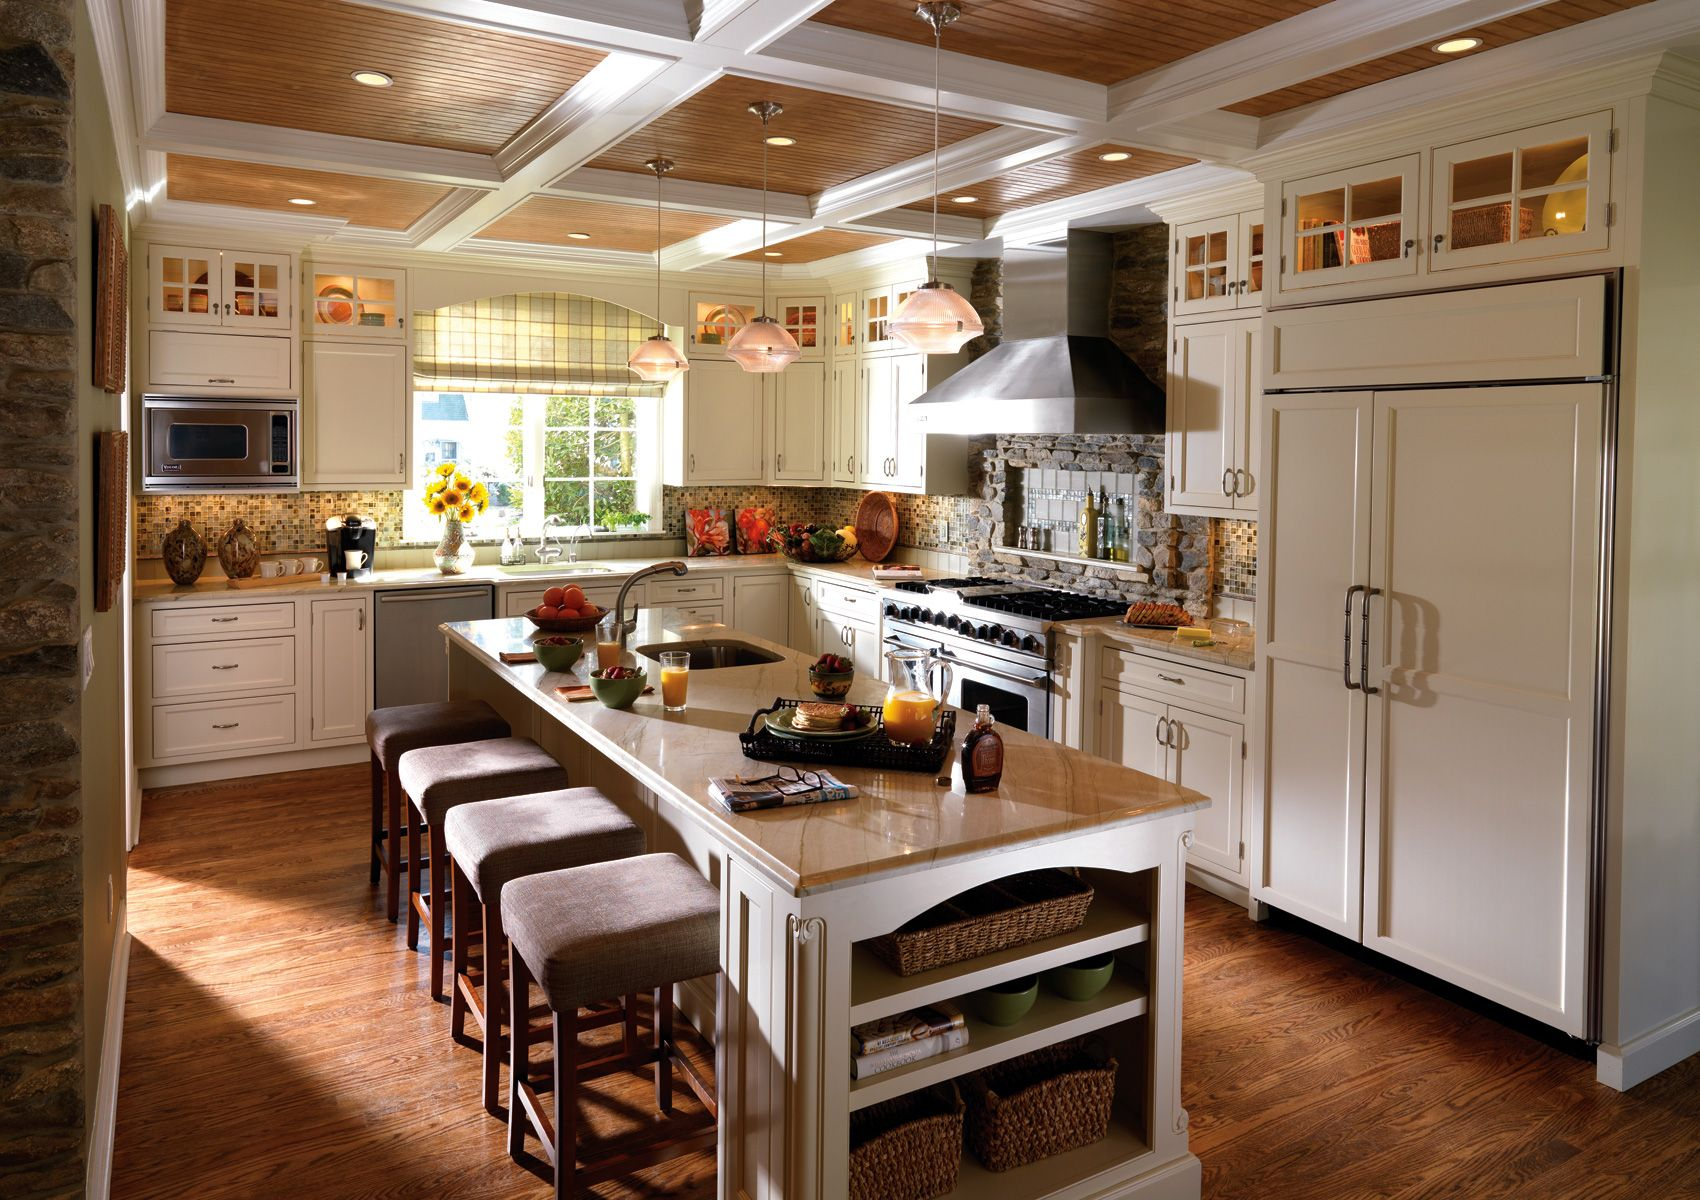 It Is Easy To Love The Natural Elements Of Cooling Granite And Warm Woodgrain In This Airy And Fr French Country Kitchen Cabinets Kitchen Design Fancy Kitchens